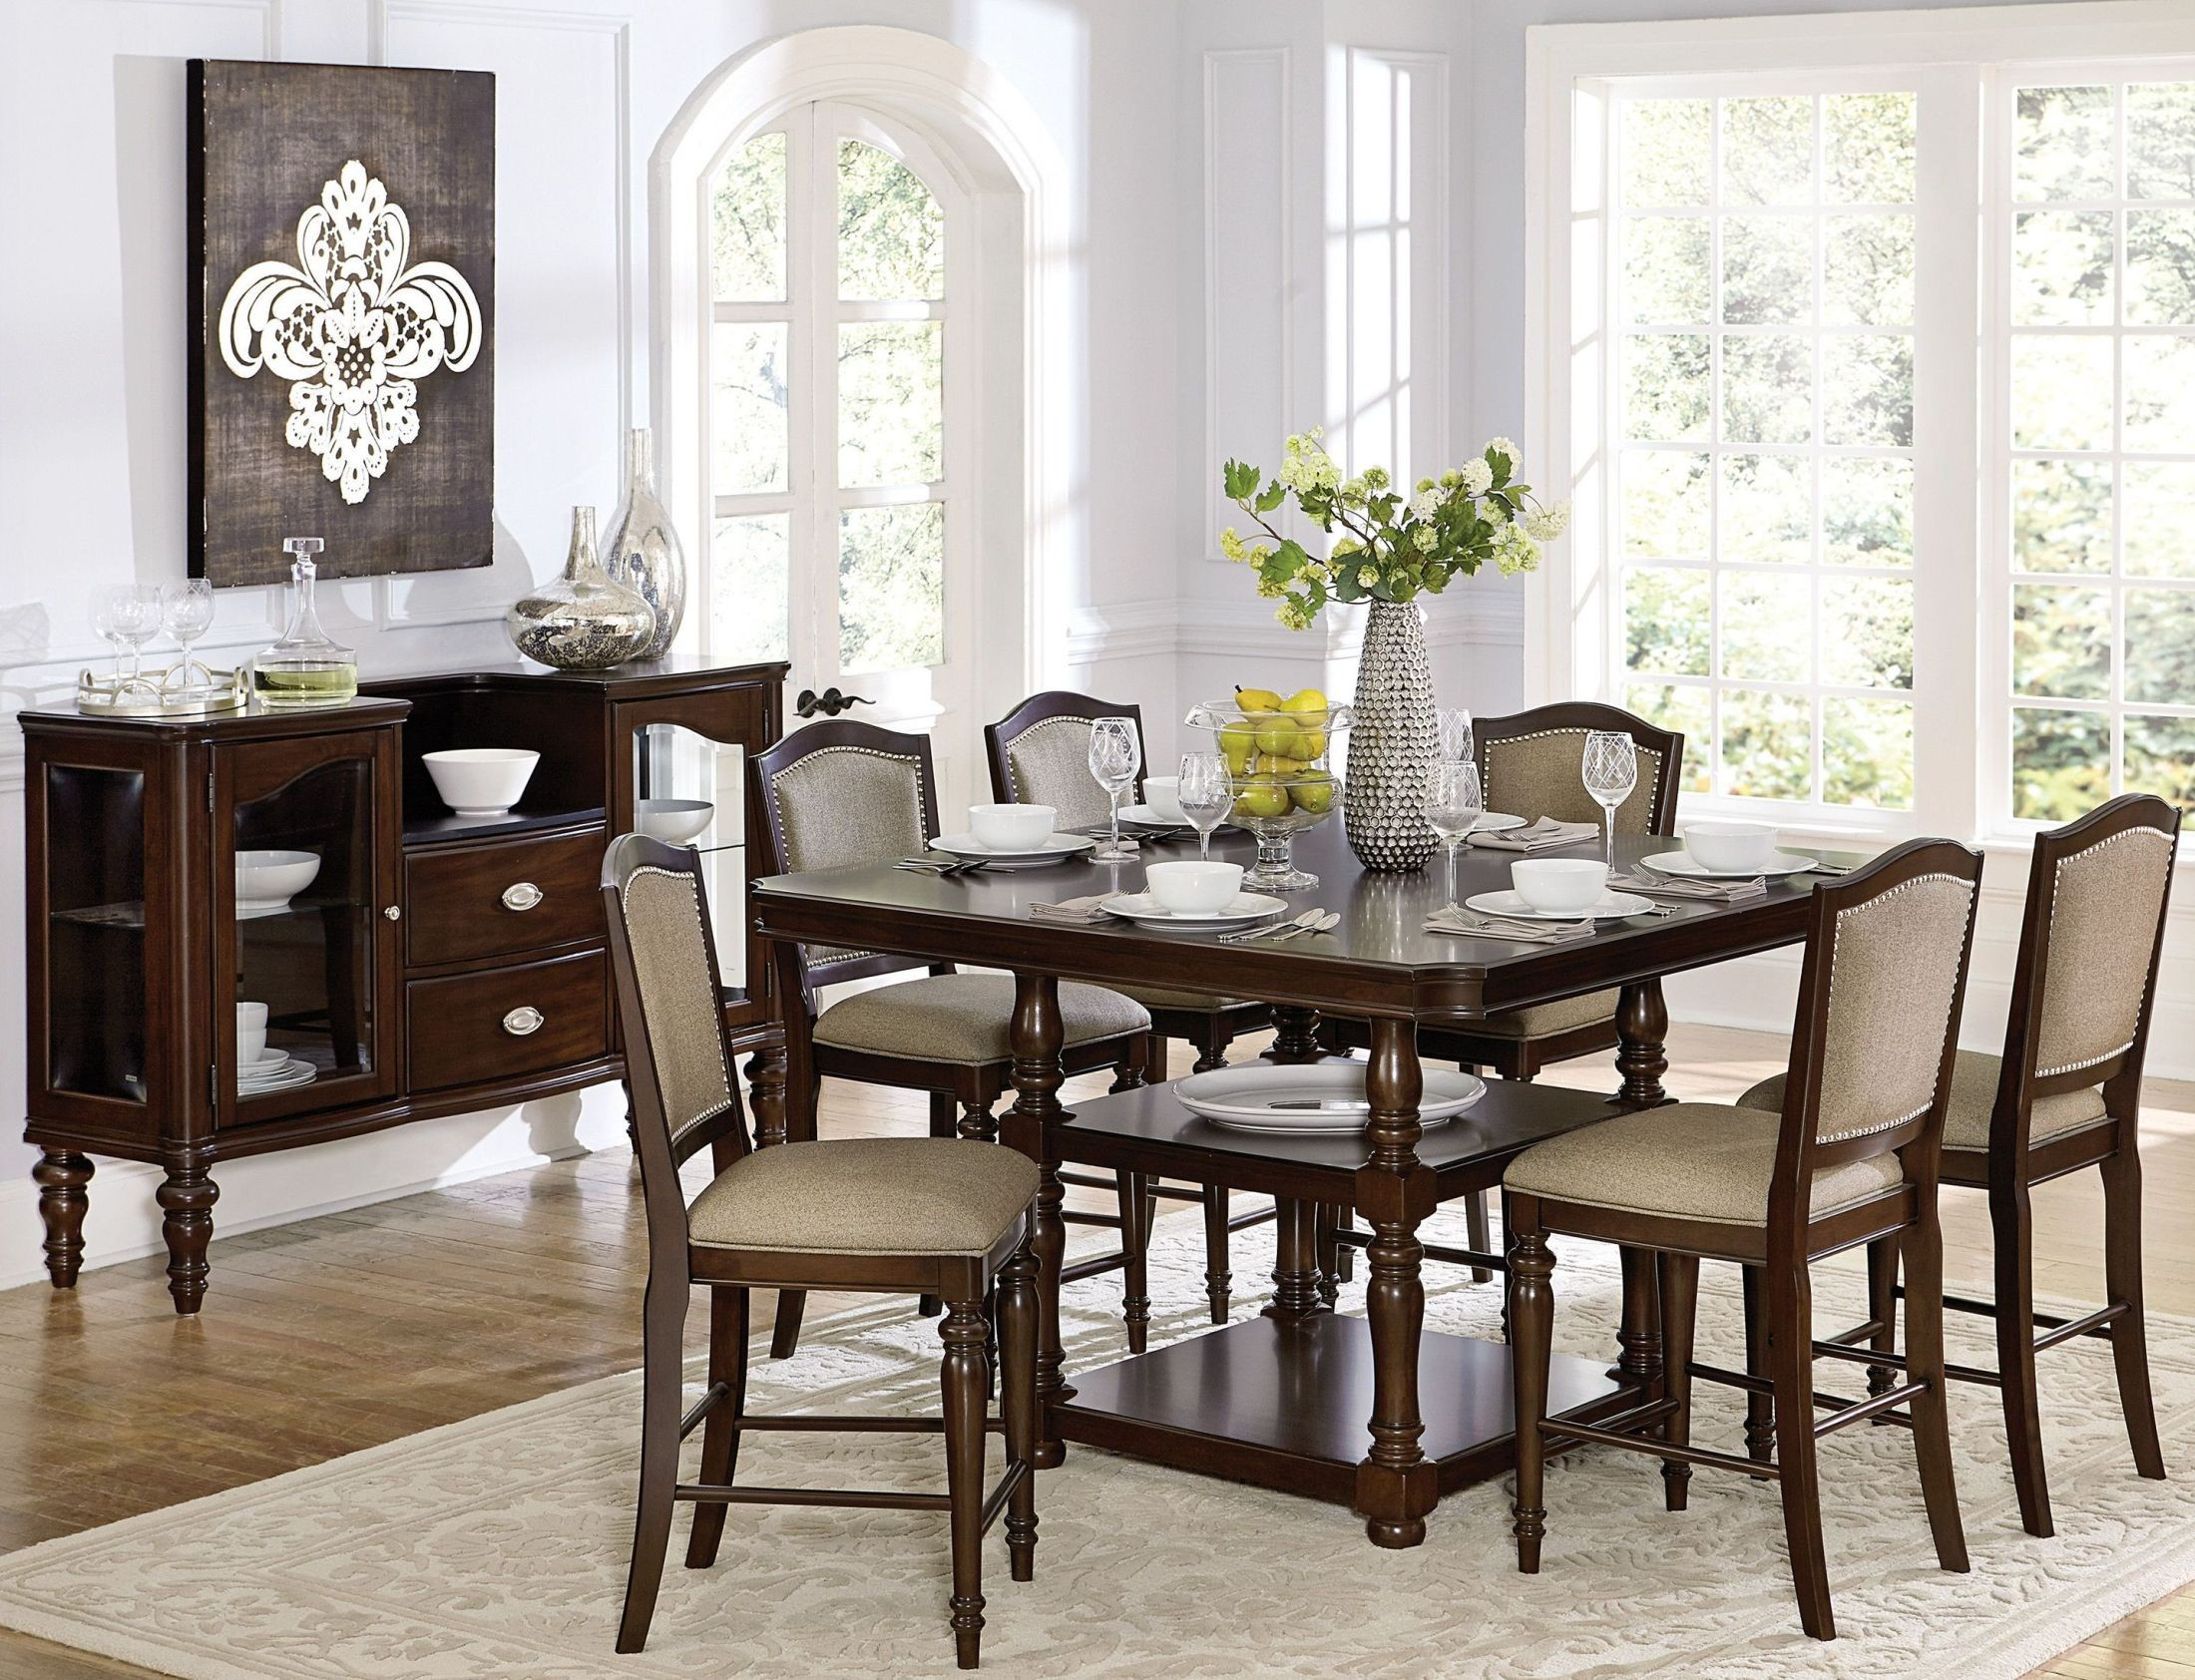 Marston brown counter height dining room set from for Brown dining room set